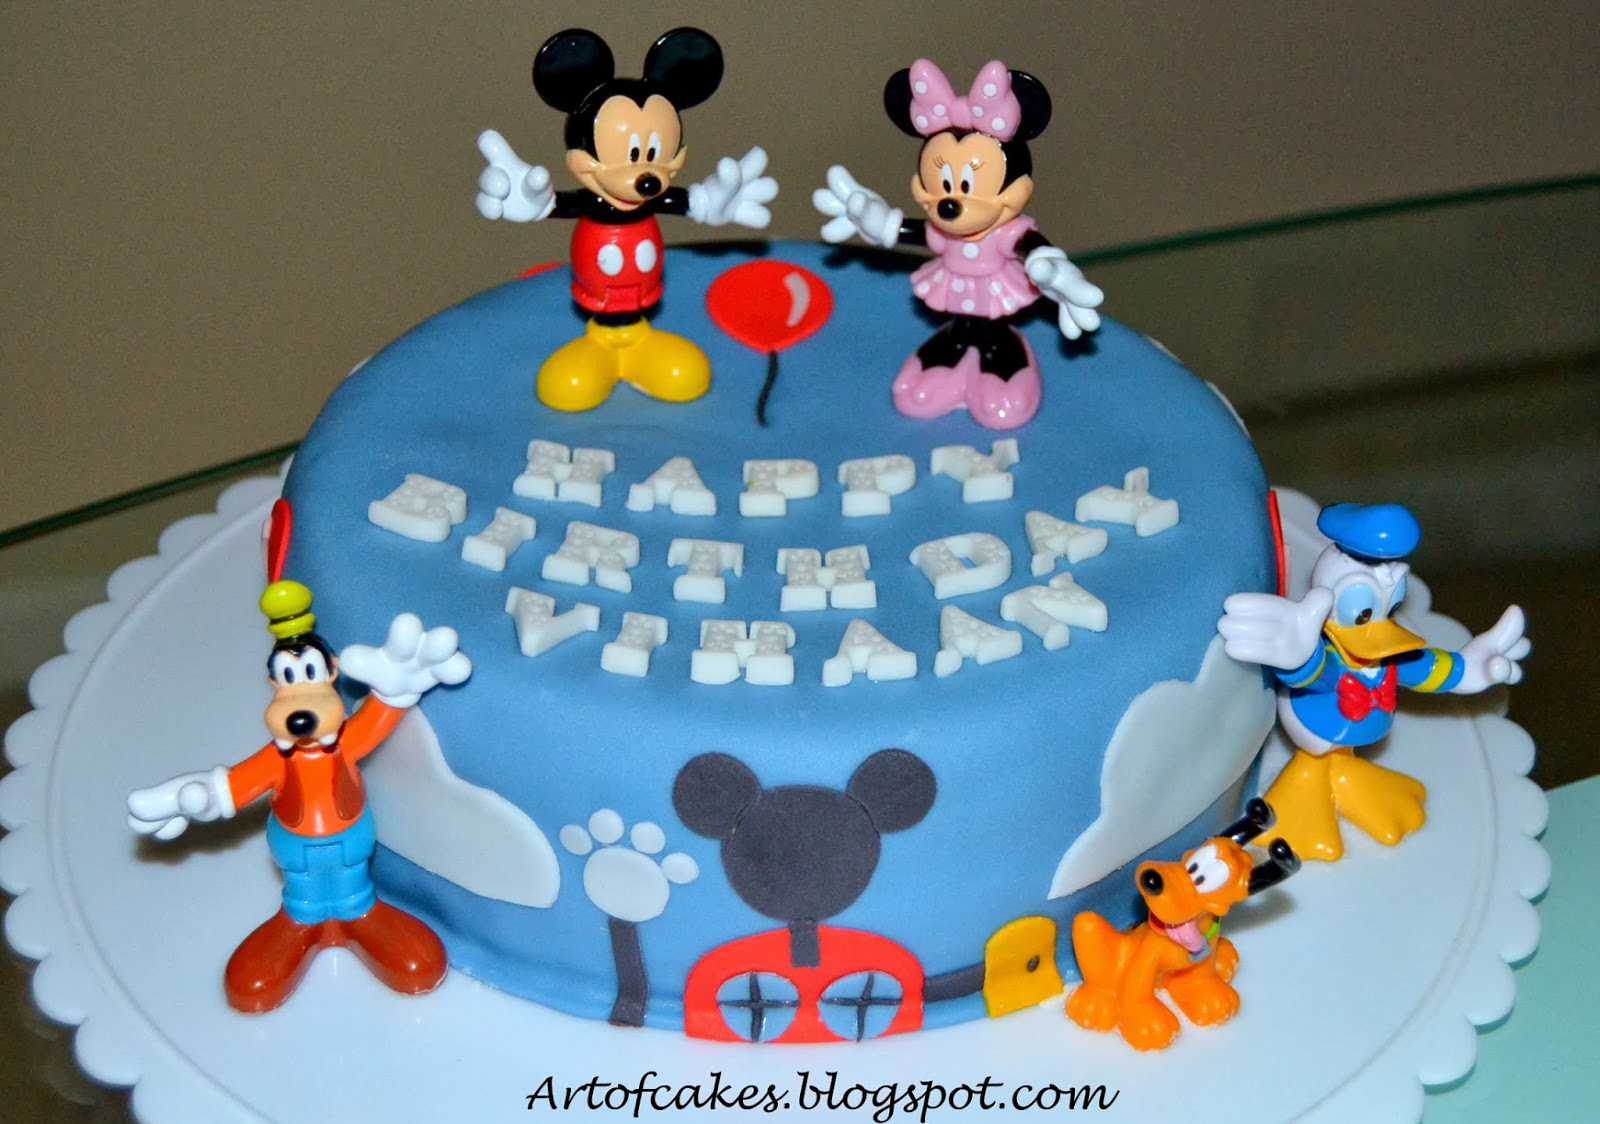 This Mickey Mouse Clubhouse Birthday Cake Is Designed For A 1 Year Old Boy Who Loves